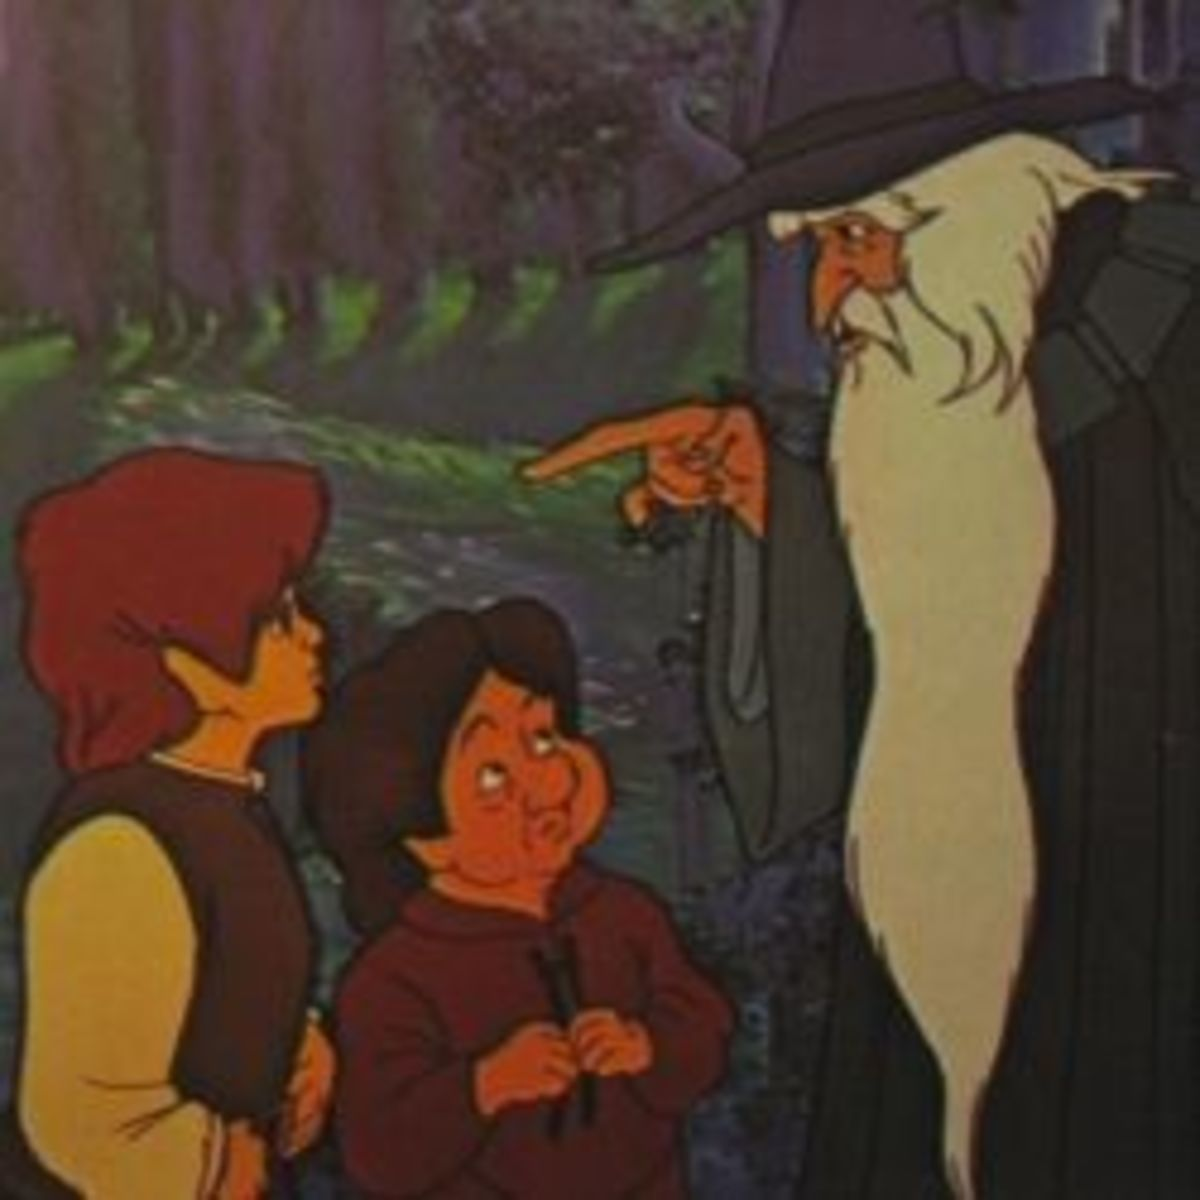 """The Lord of the Rings"" Book and Animated Movies for Children"